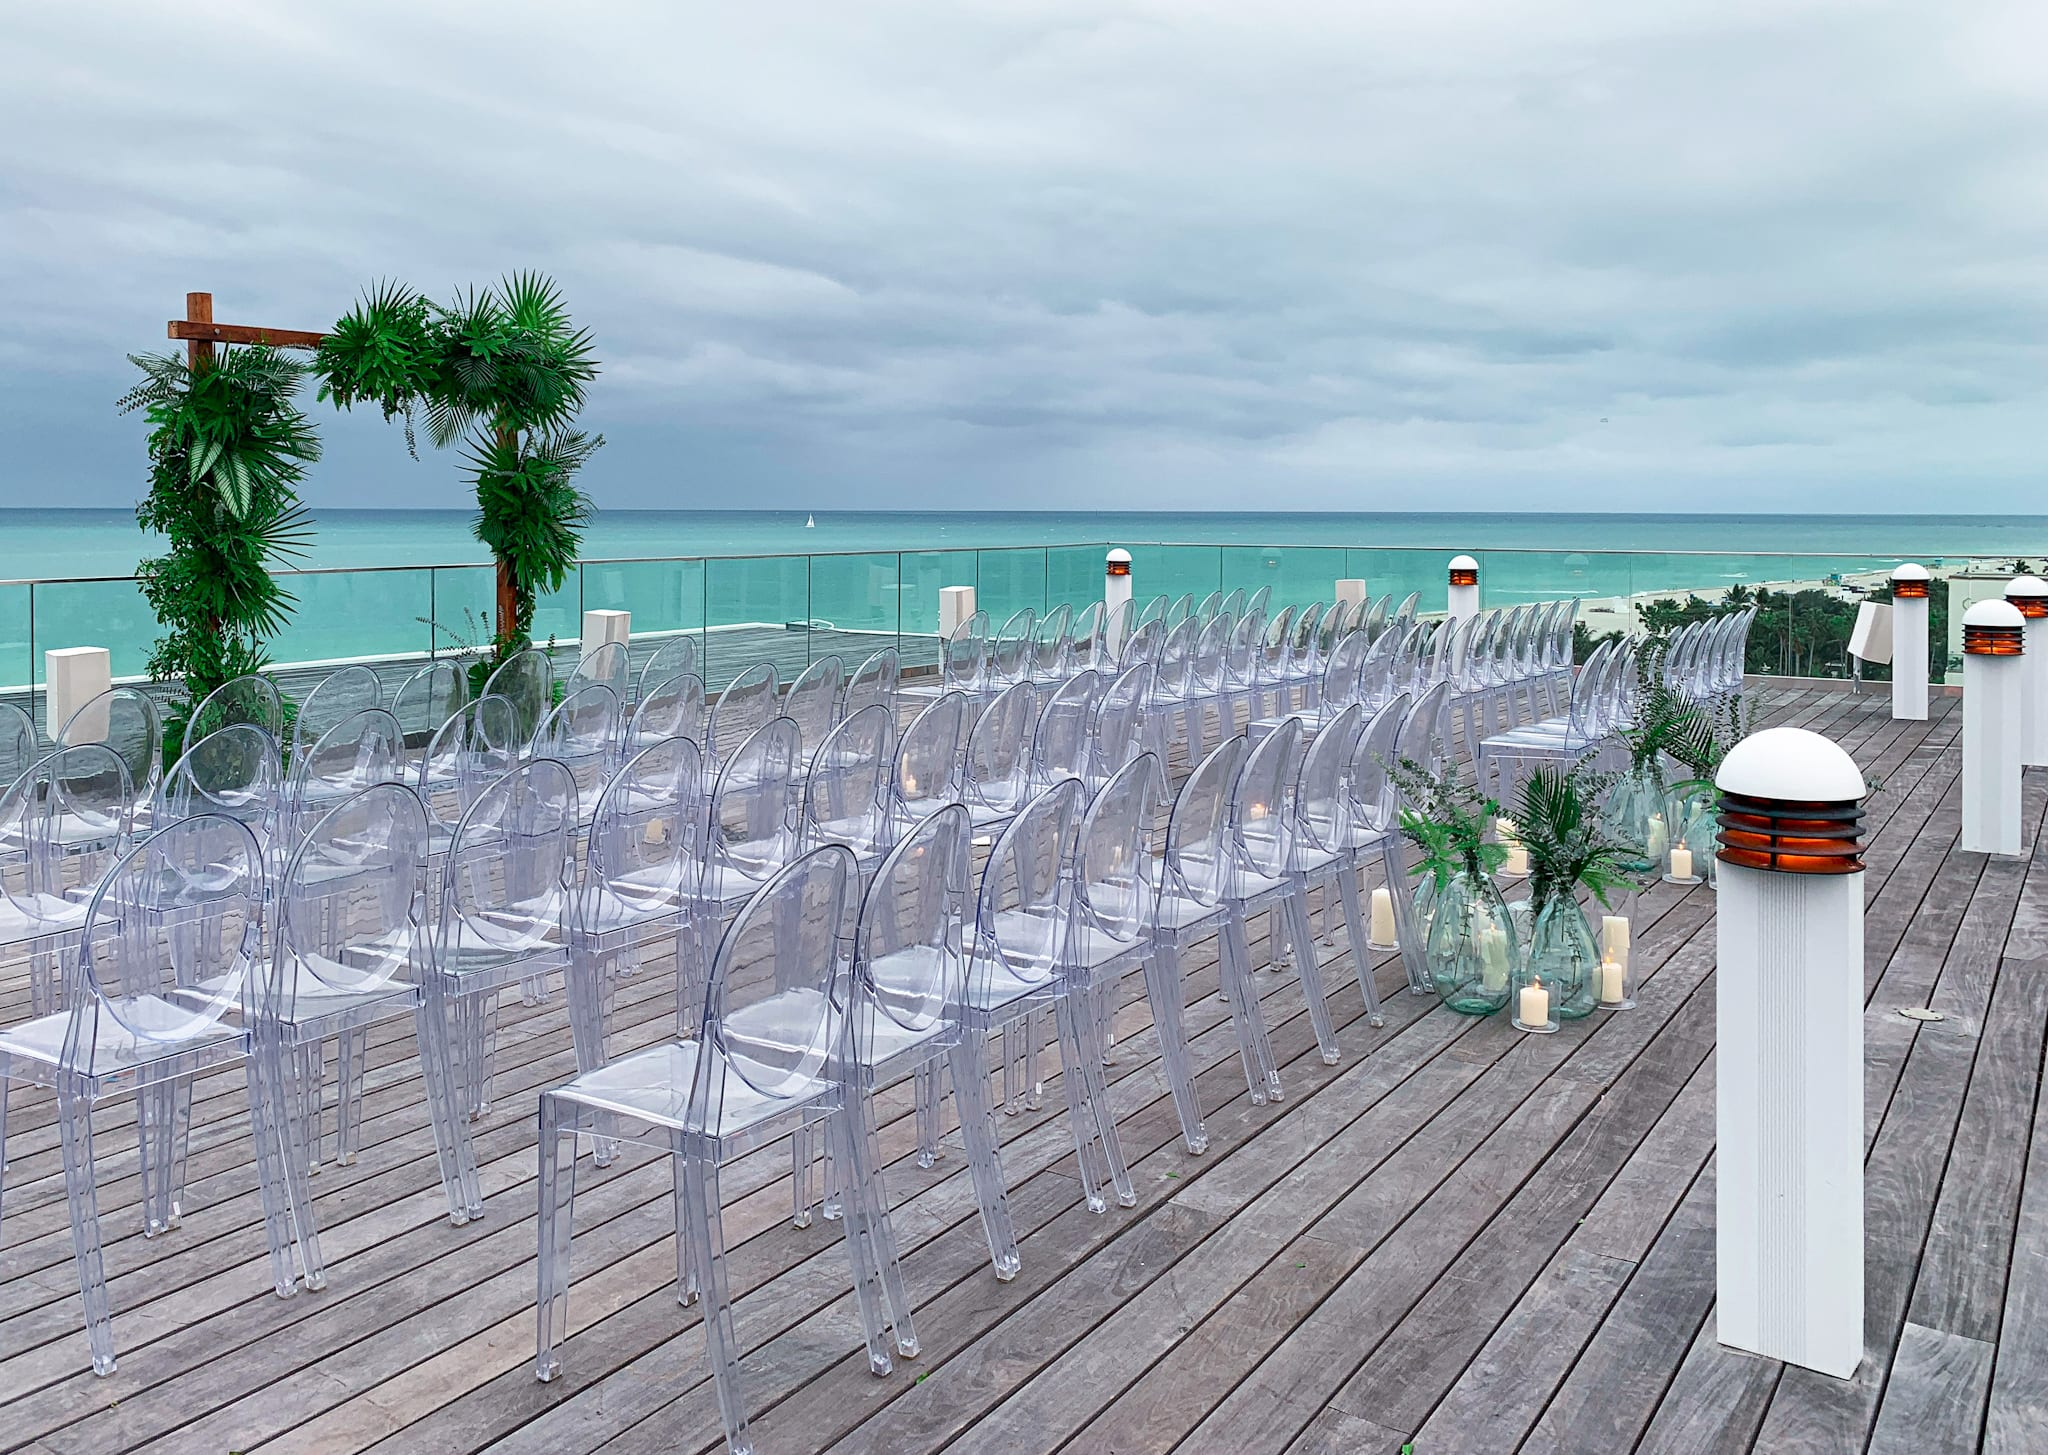 Rows of clear chairs set up on wooden ocean terrace3 floor with green arch in the front